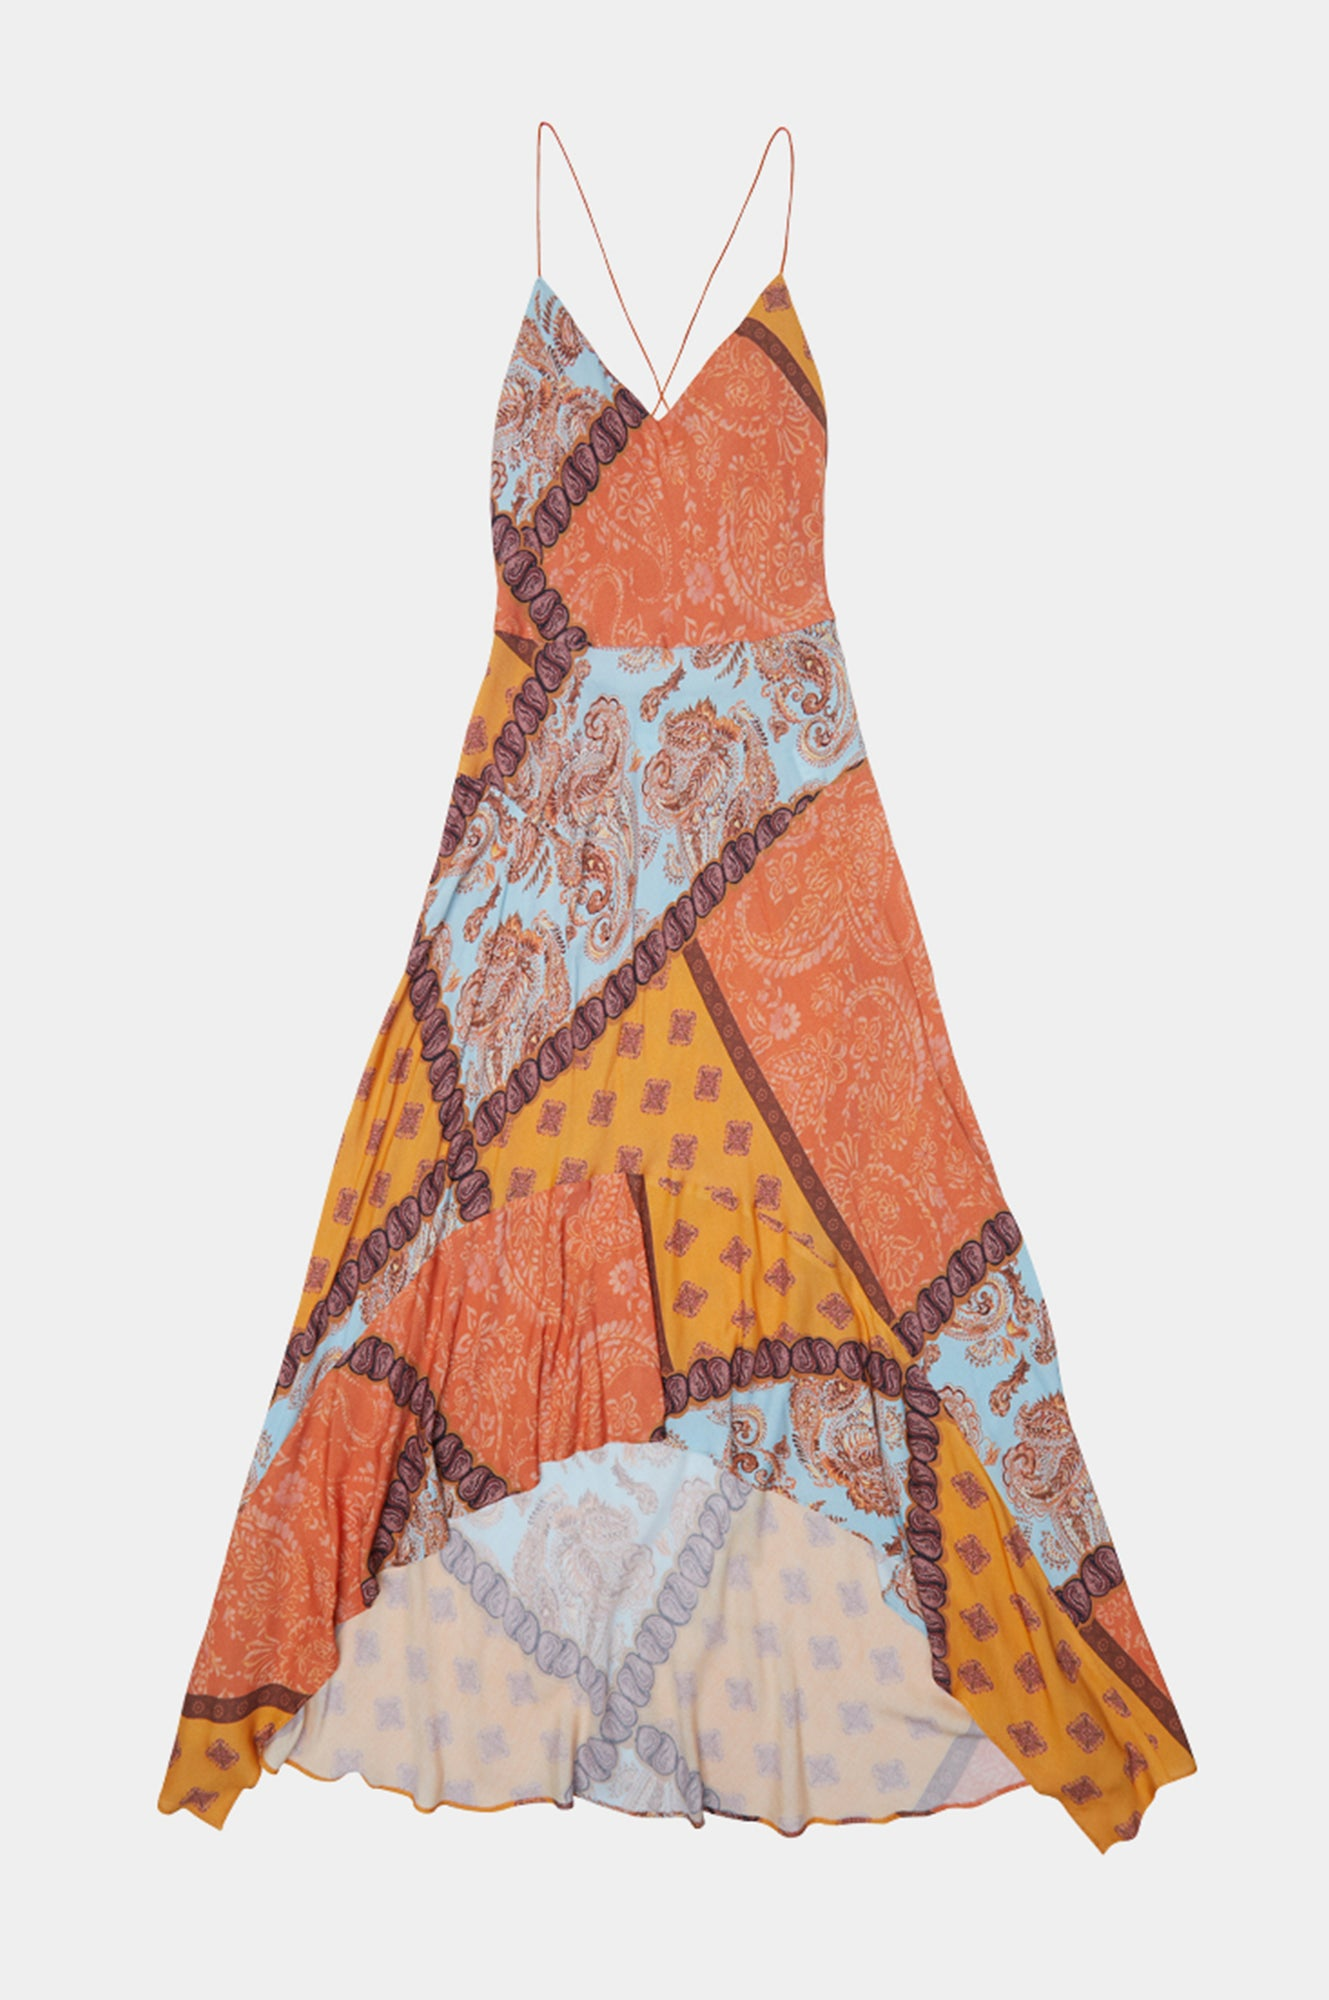 PAISLEY CIRCLE DRESS - Esteban Cortazar